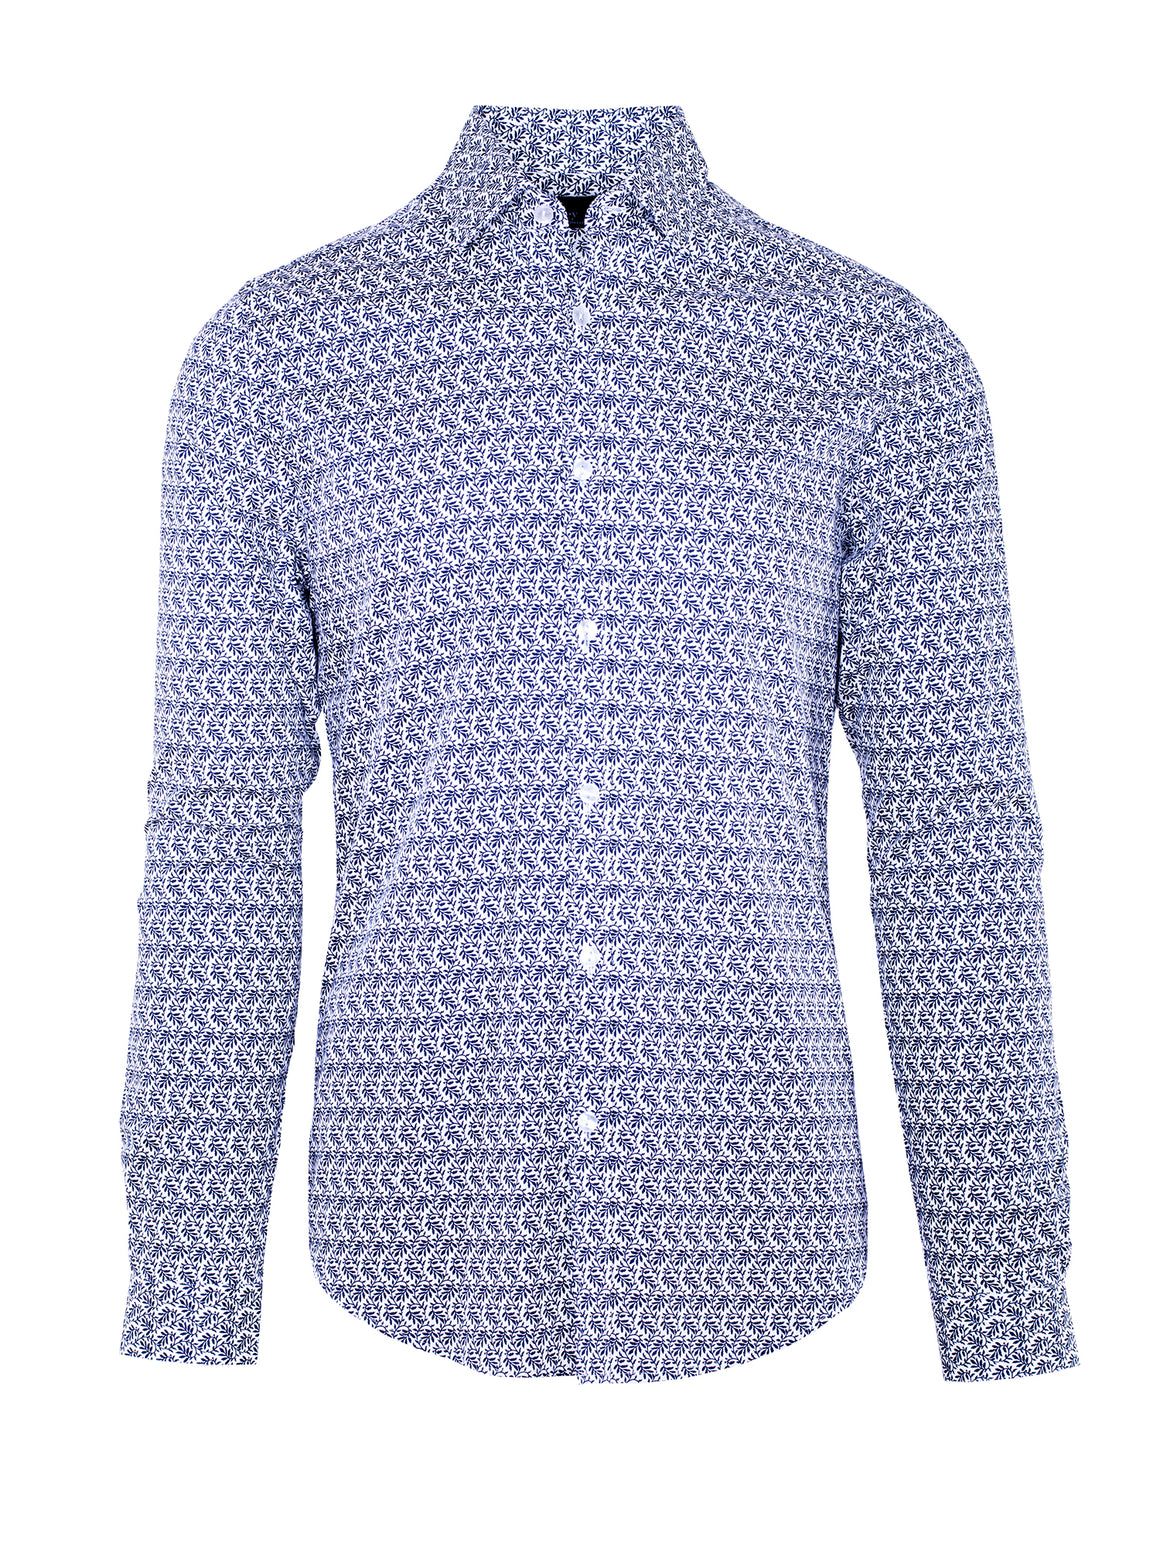 Slim Fit Leafly Shirt - White with Blue Leaf Print